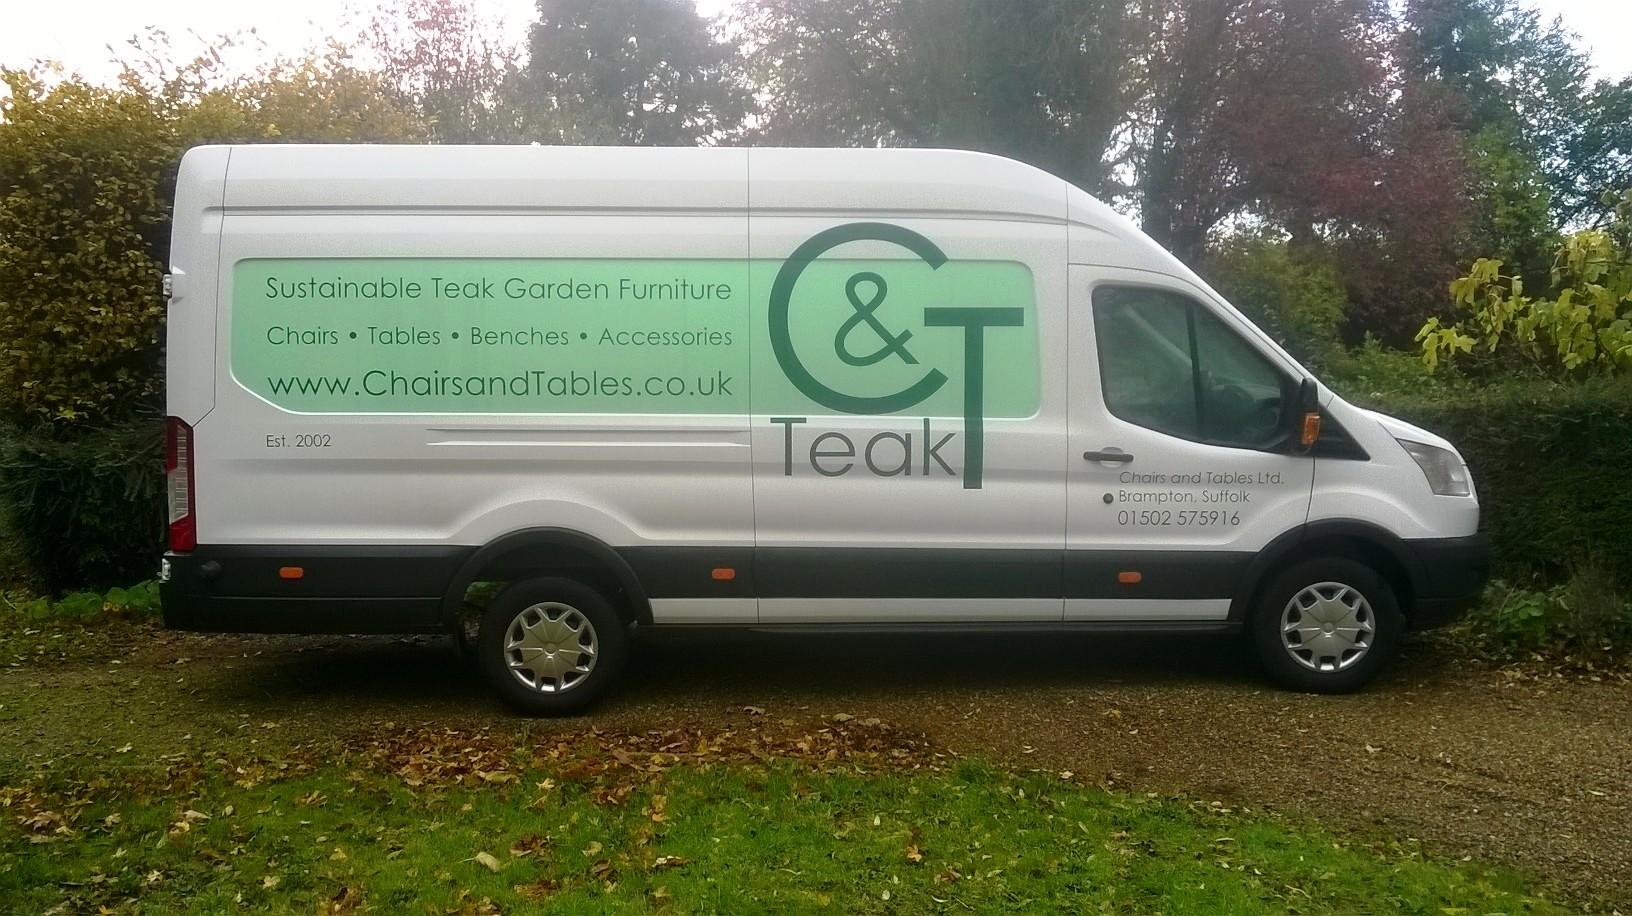 C&T teak Delivery van